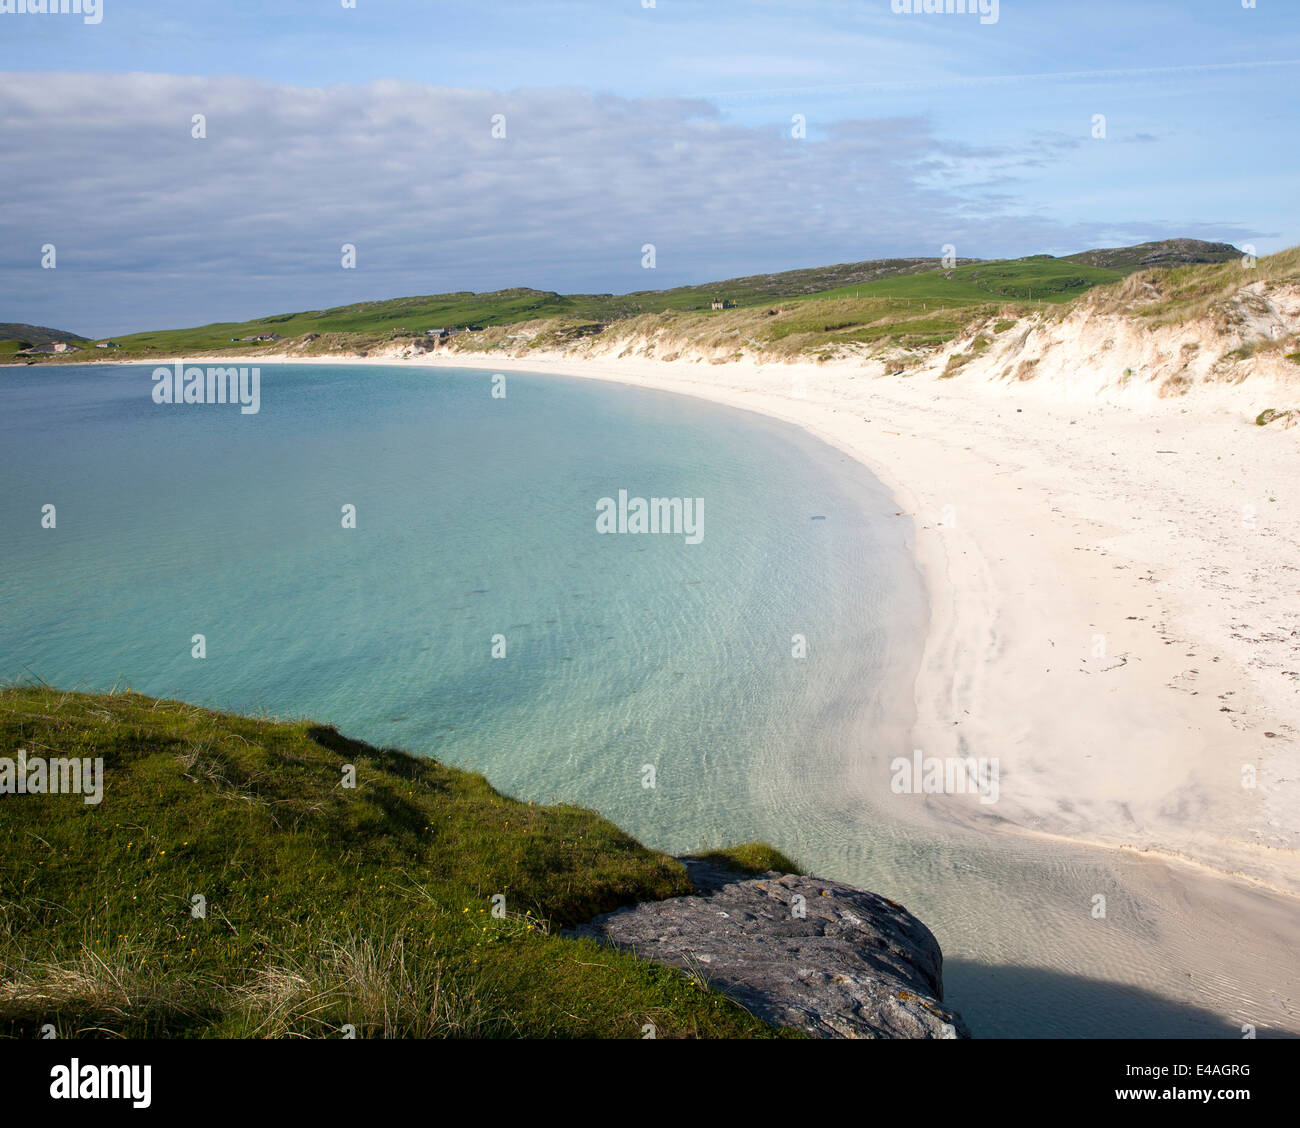 Sandy beach on Vatersay Isle of Barra, Outer Hebrides, Scotland - Stock Image